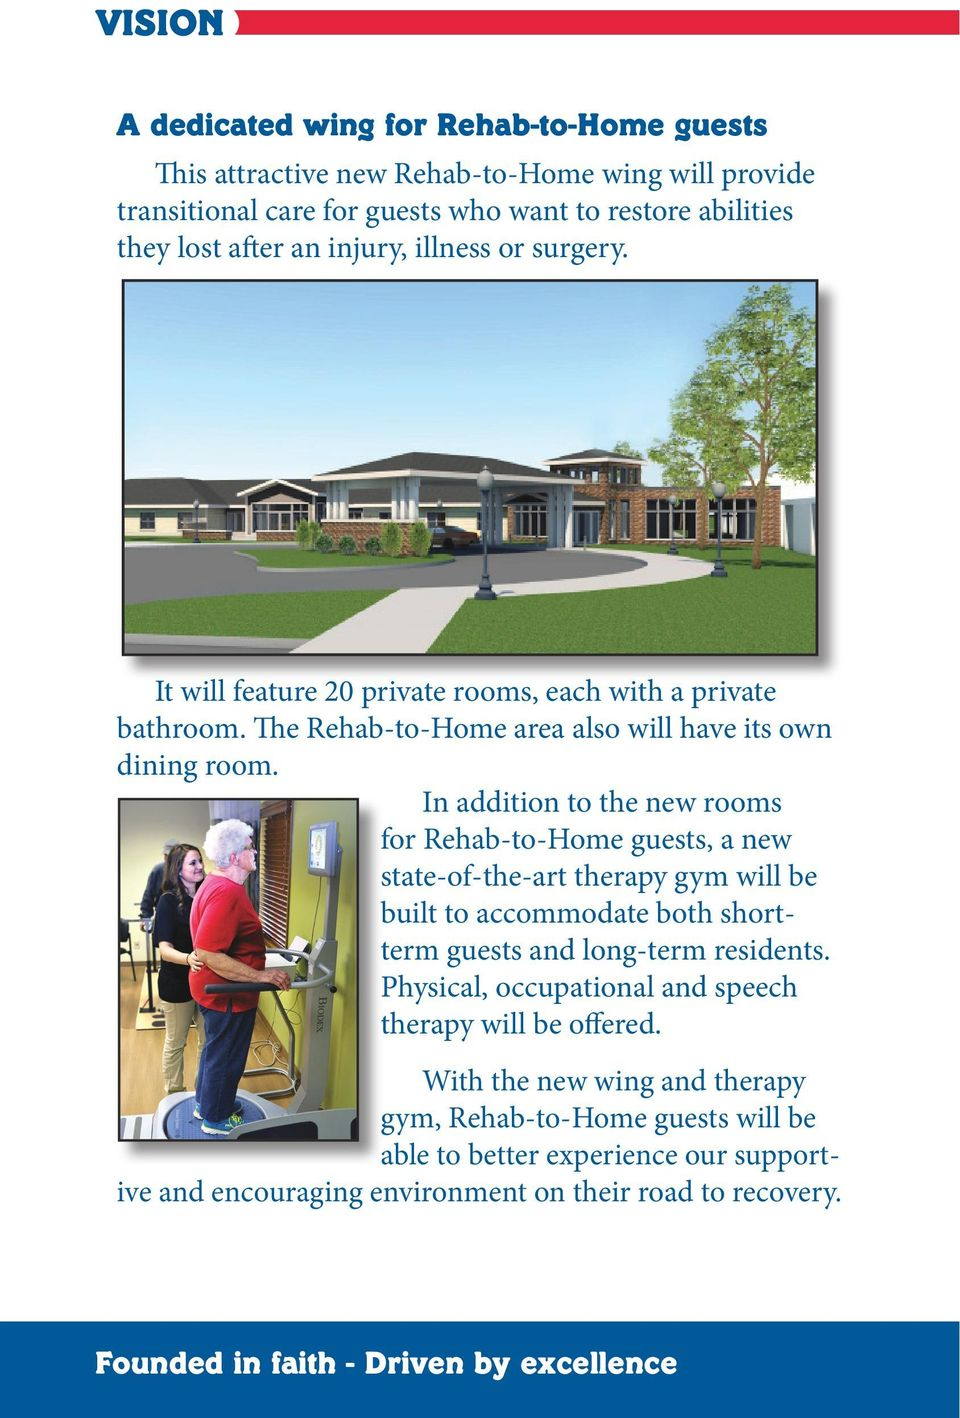 In addition to the new rooms for Rehab-to-Home guests, a new state-of-the-art therapy gym will be built to accommodate both shortterm guests and long-term residents.